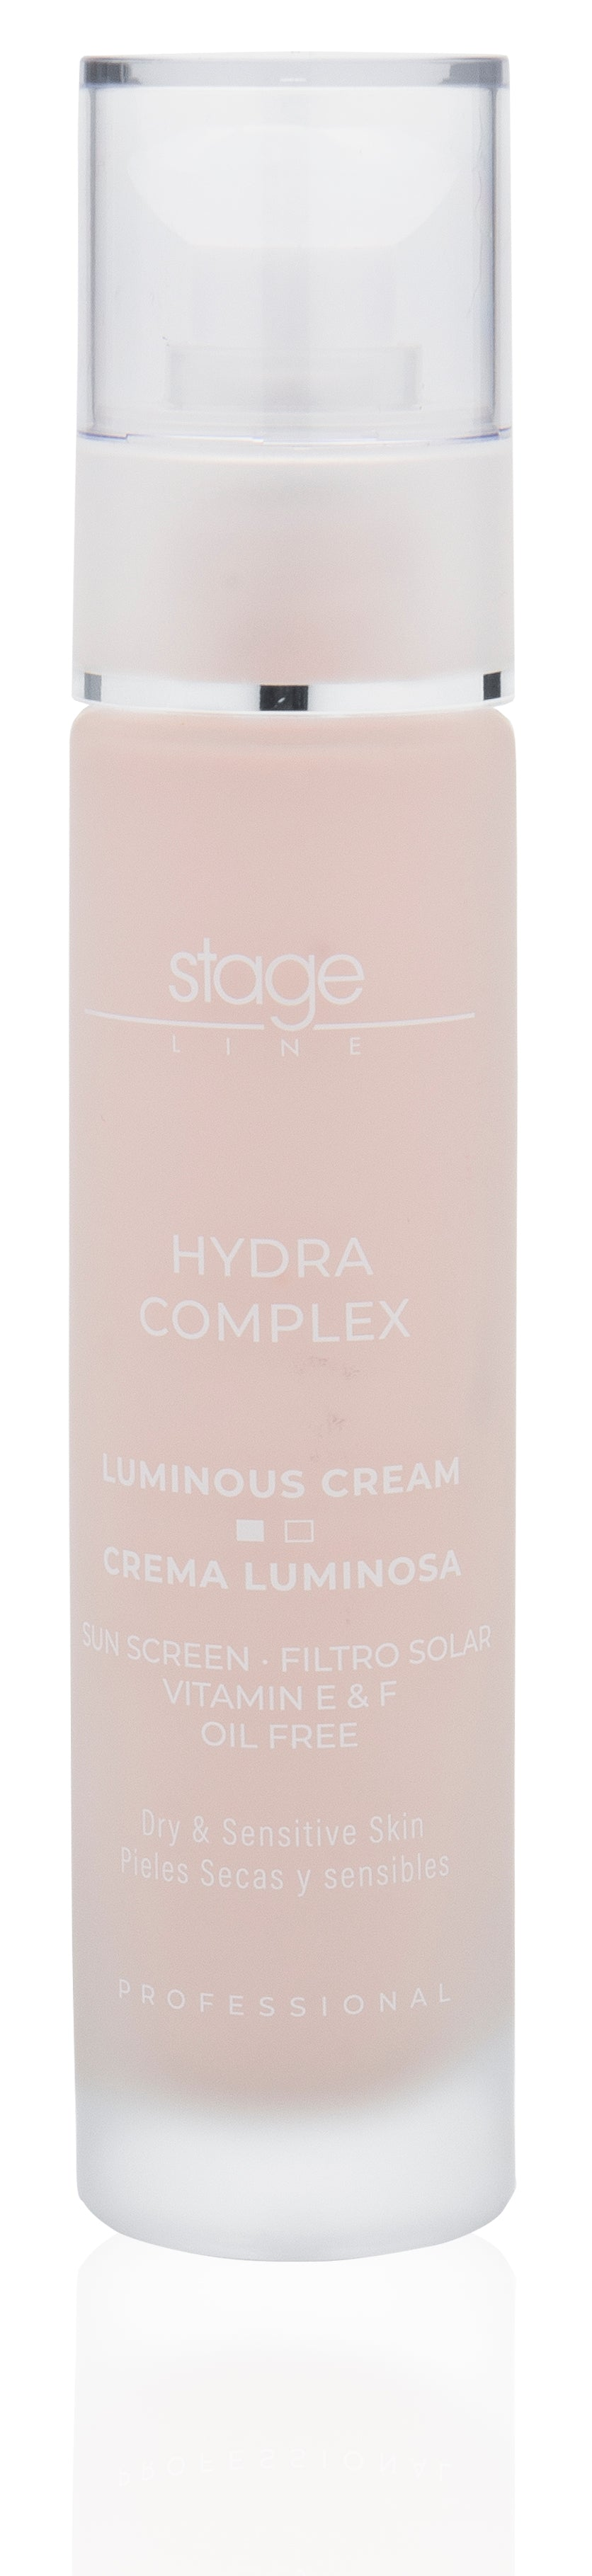 Hydra Complex Luminous Cream 50 ML